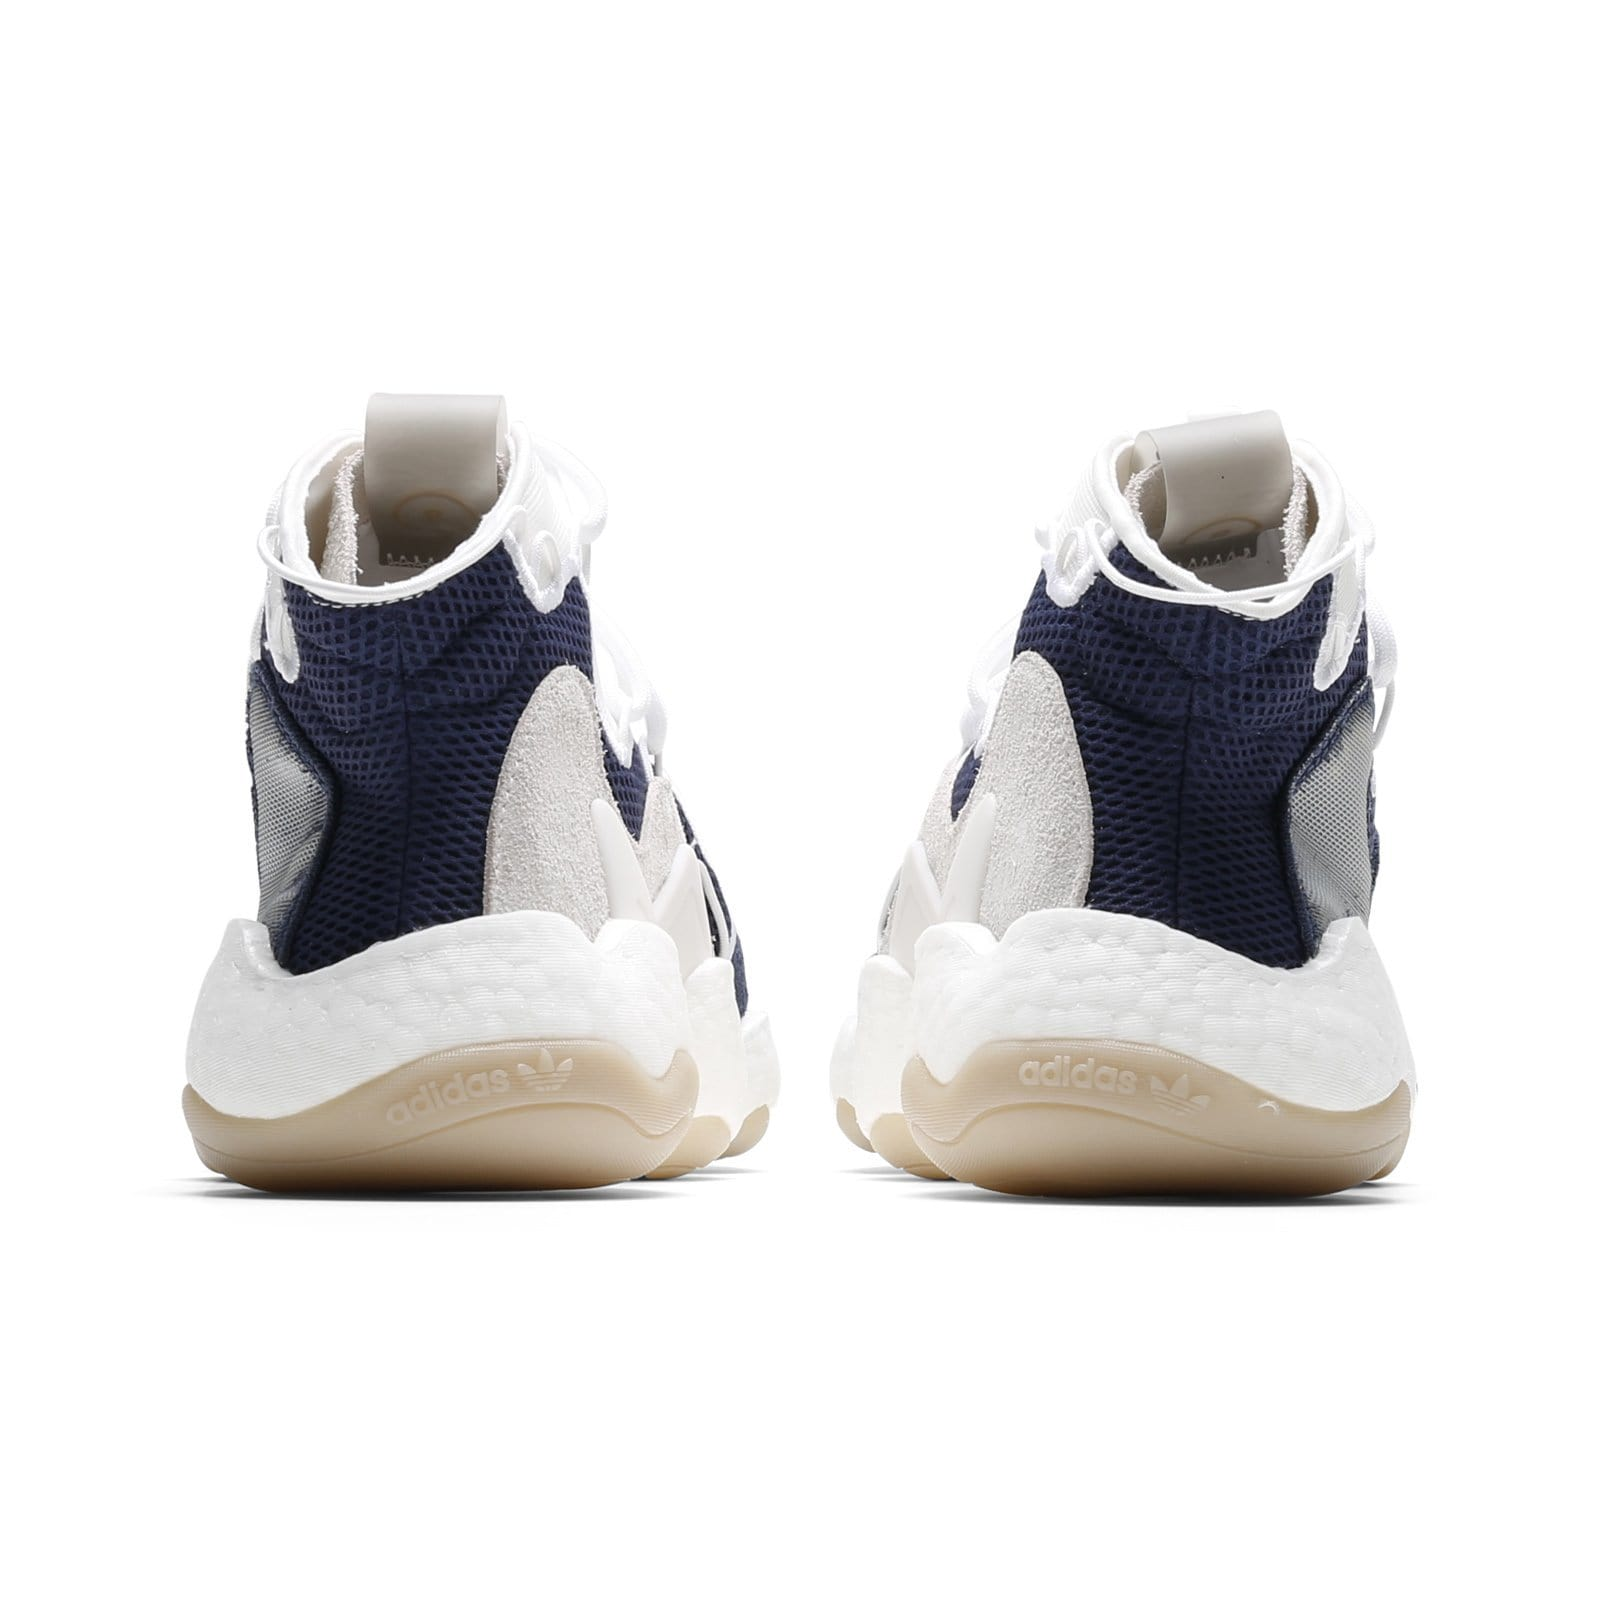 c84ea22f5a8 Adidas x Bristol Studio CRAZY BYW LVL I Collegiate Navy Running White Cloud  White. Next